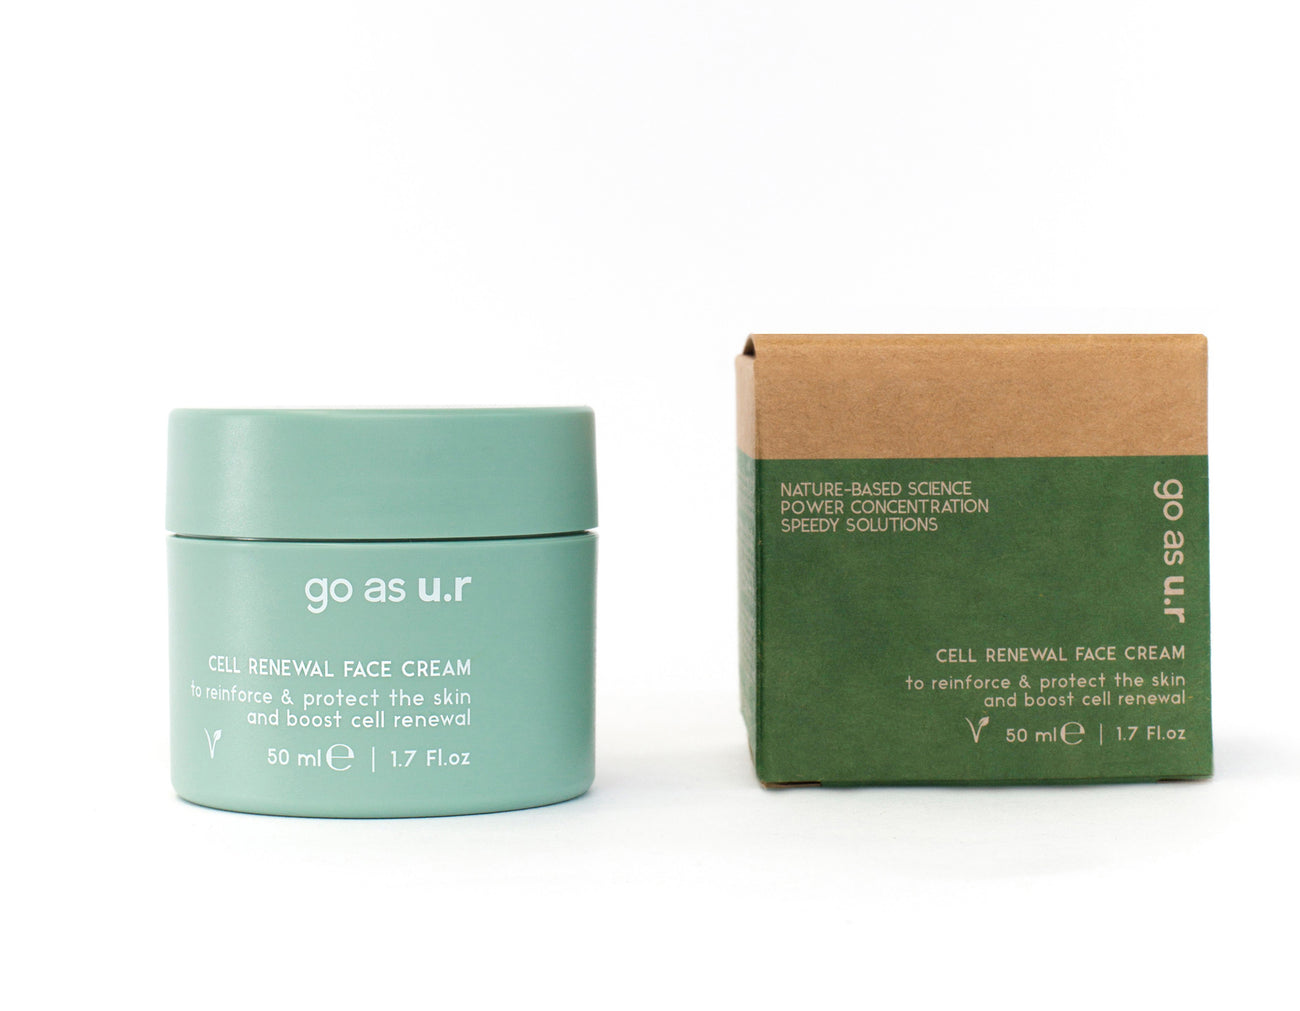 cell renewal face cream | 50 ml